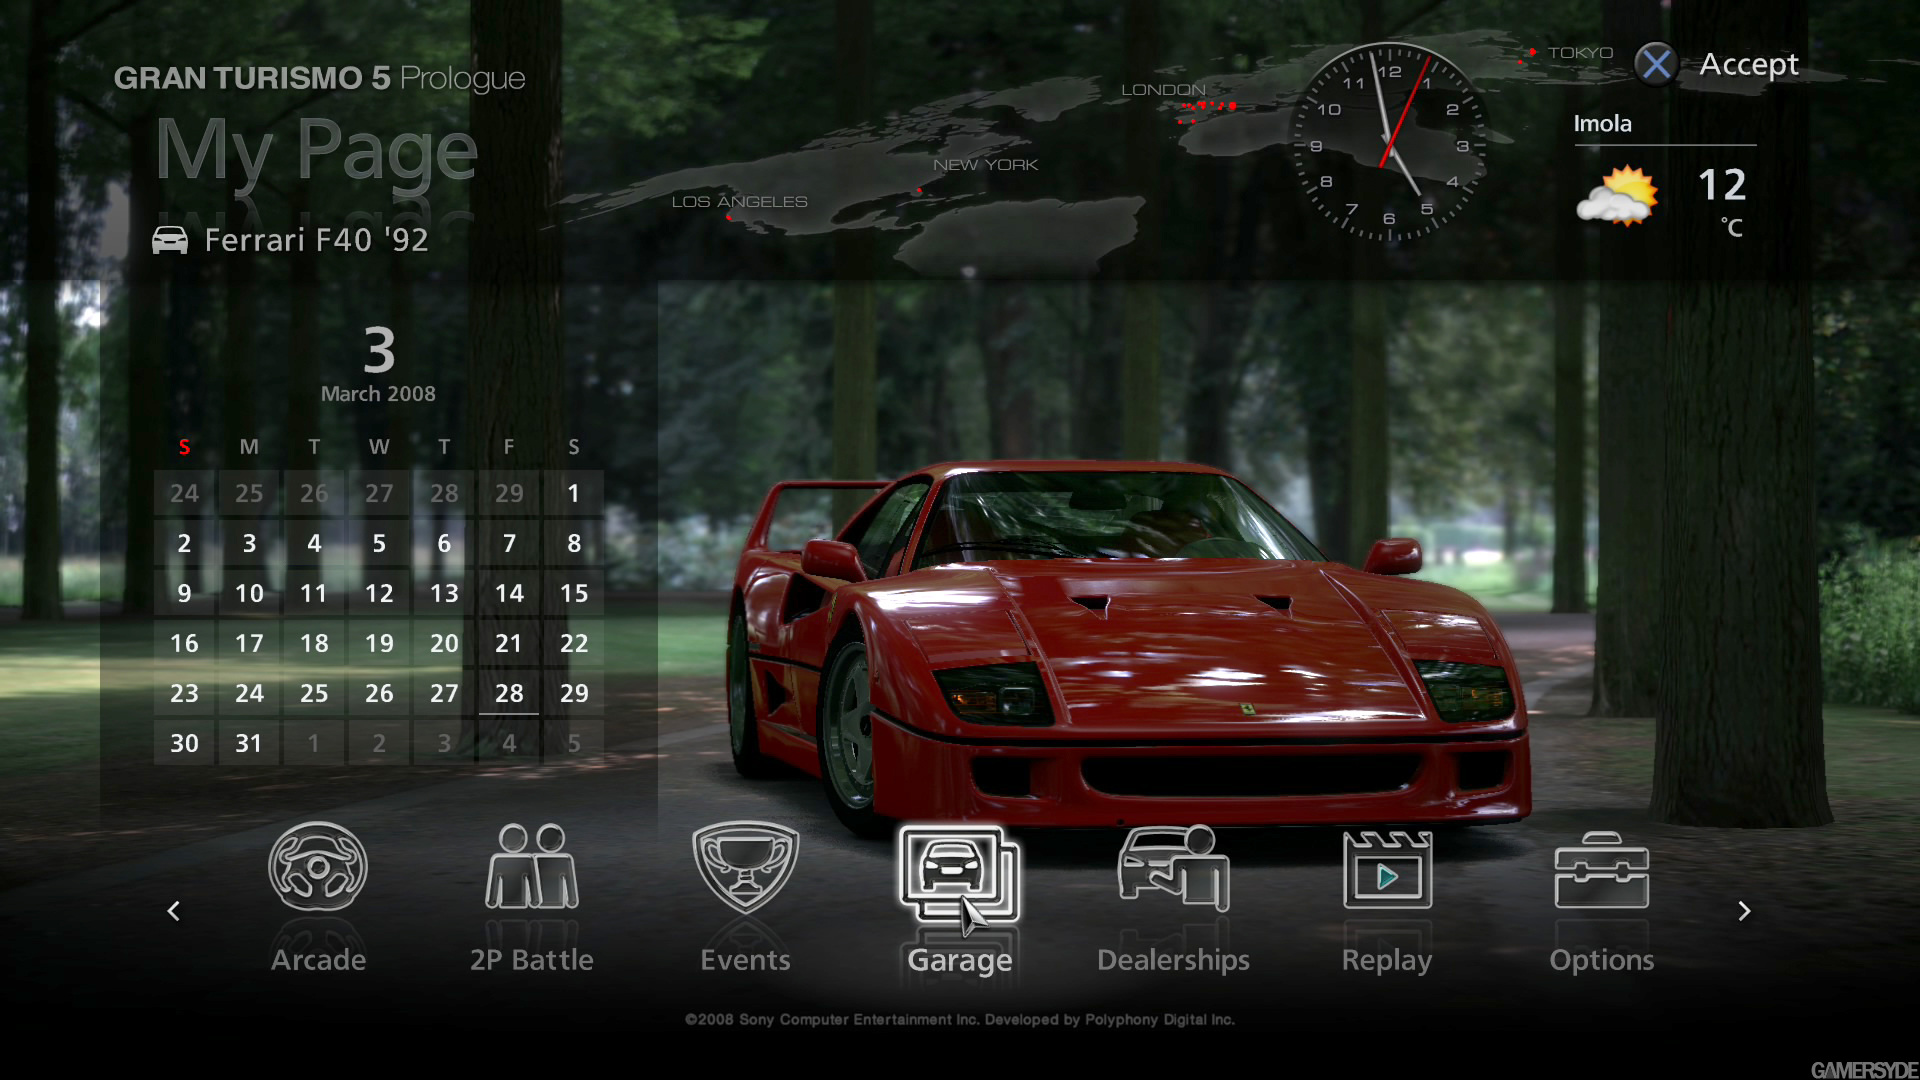 gran turismo 5 prologue full hd wallpaper and background image 1920x1080 id 452807. Black Bedroom Furniture Sets. Home Design Ideas